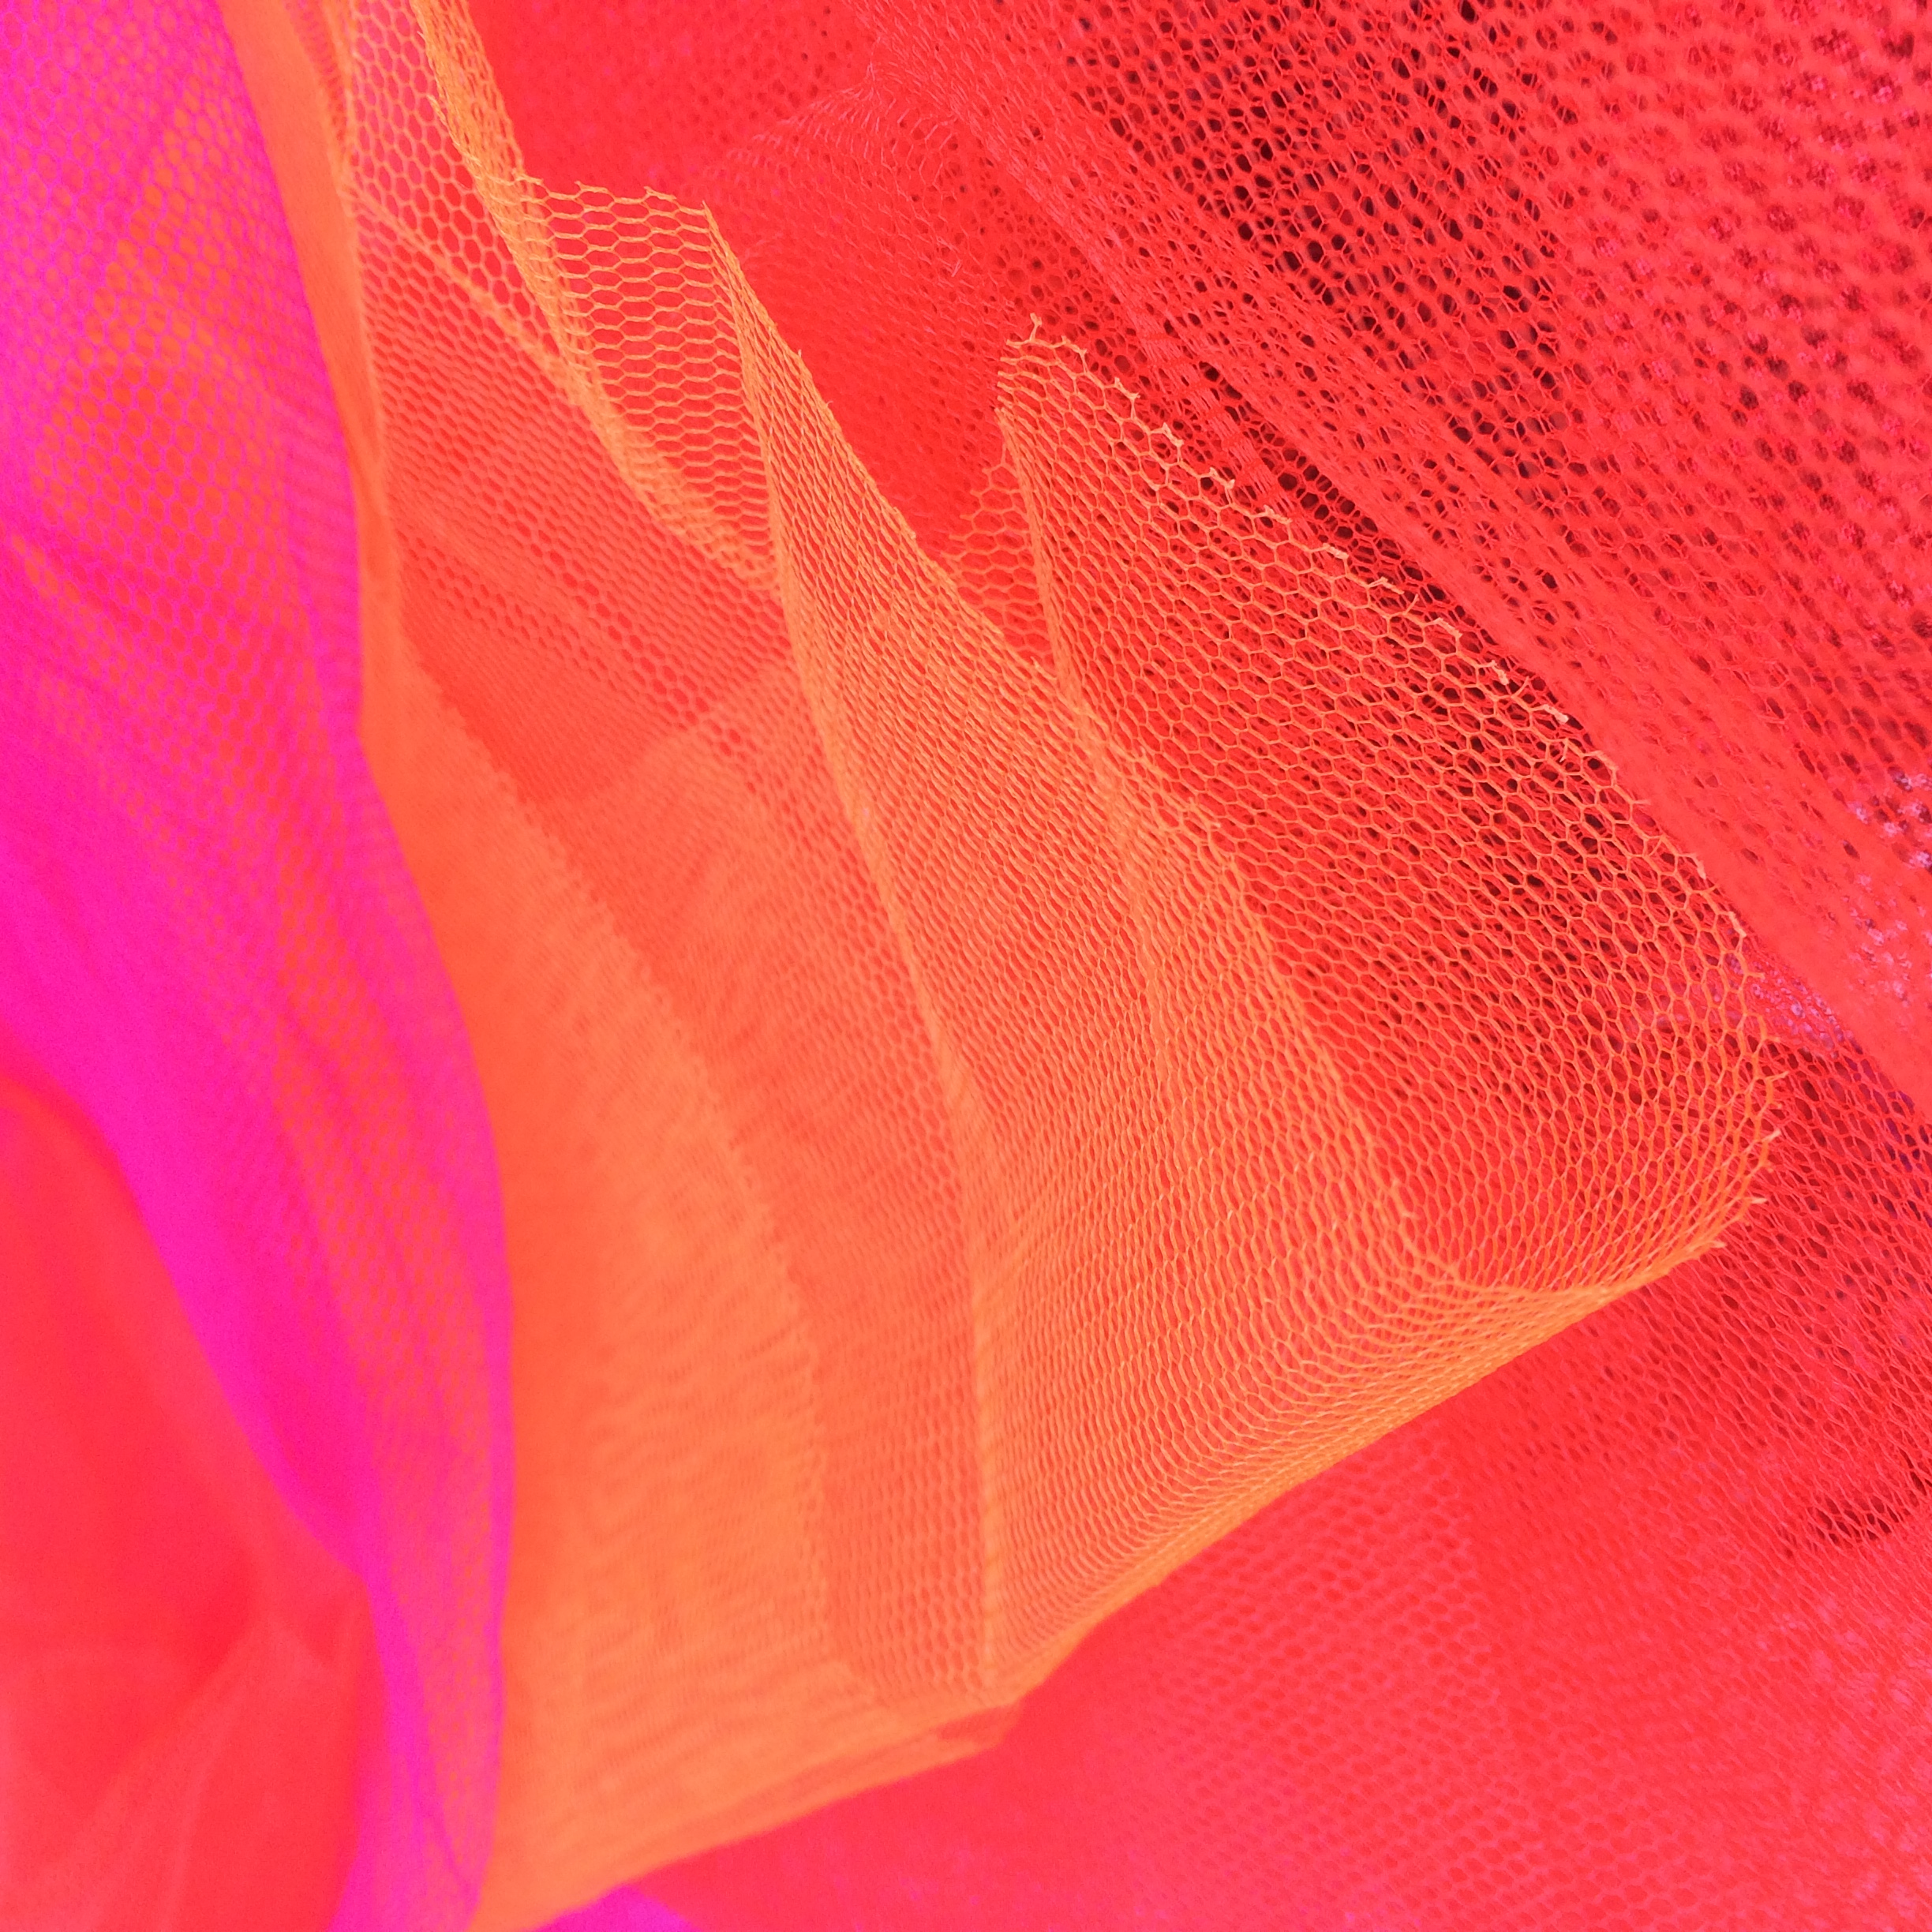 get some red netting, go from orangy reds all the way to bluey pinks.